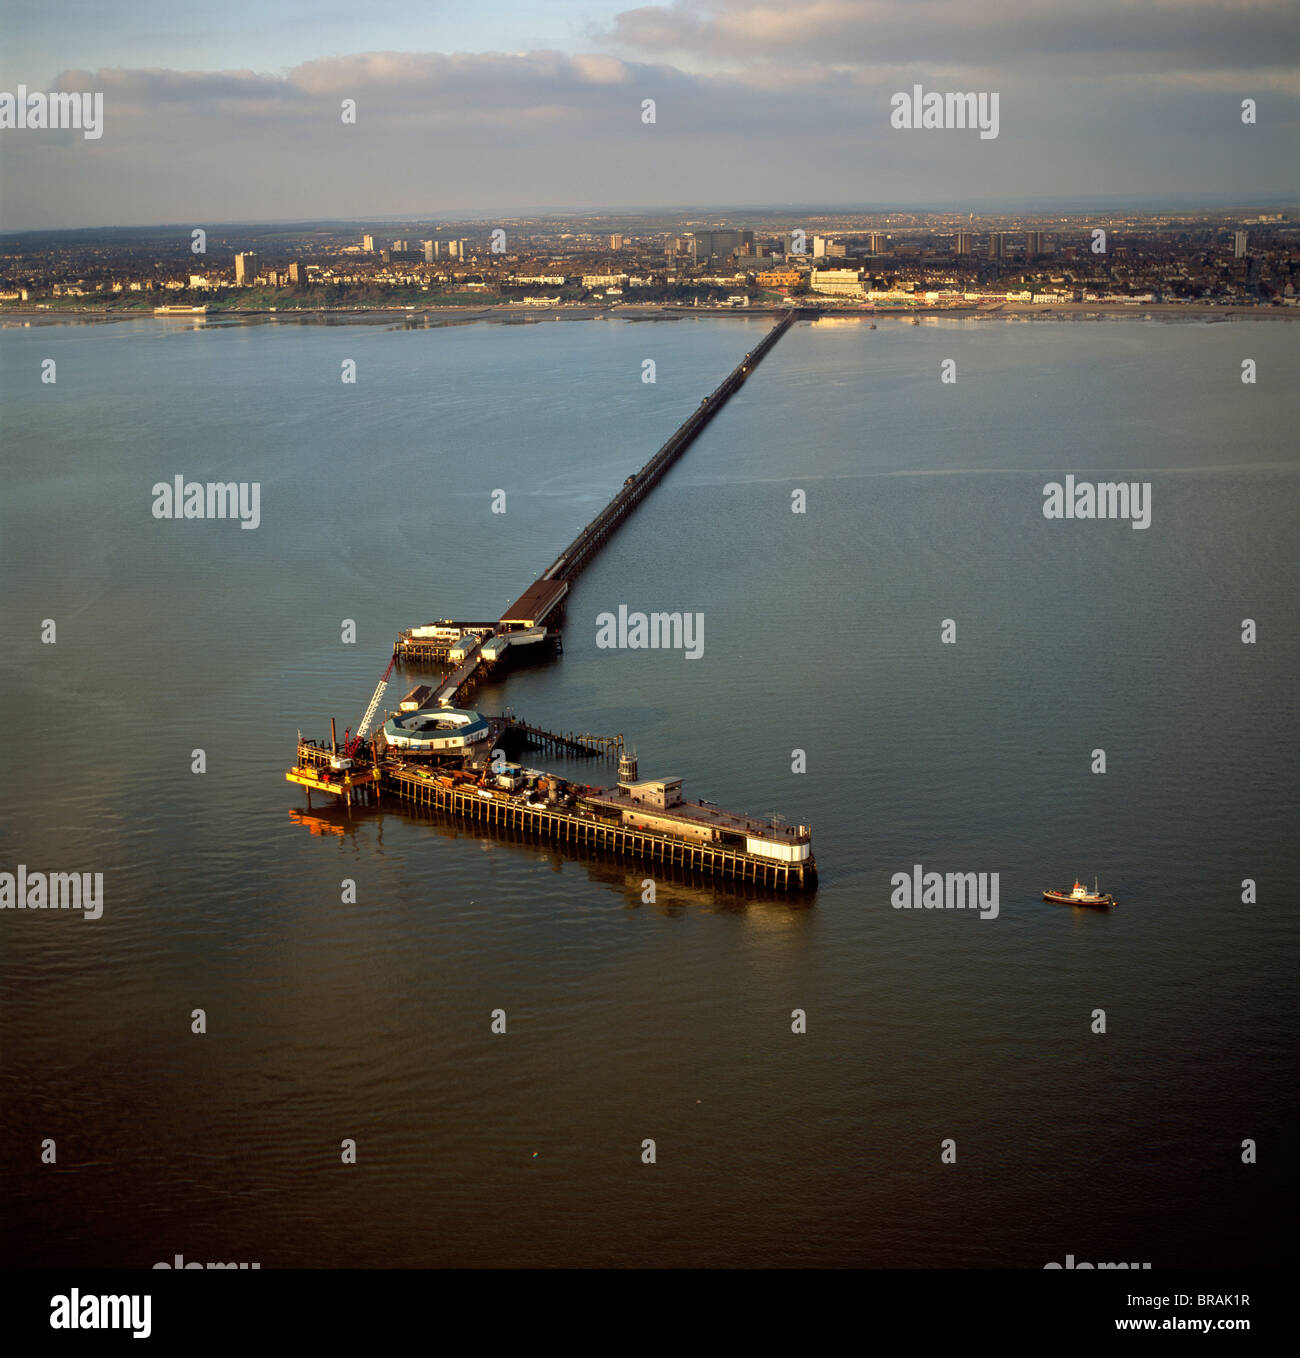 Aerial image of Southend Pier, the longest pleasure pier in the world, and estuary of the River Thames, Southend - Stock Image